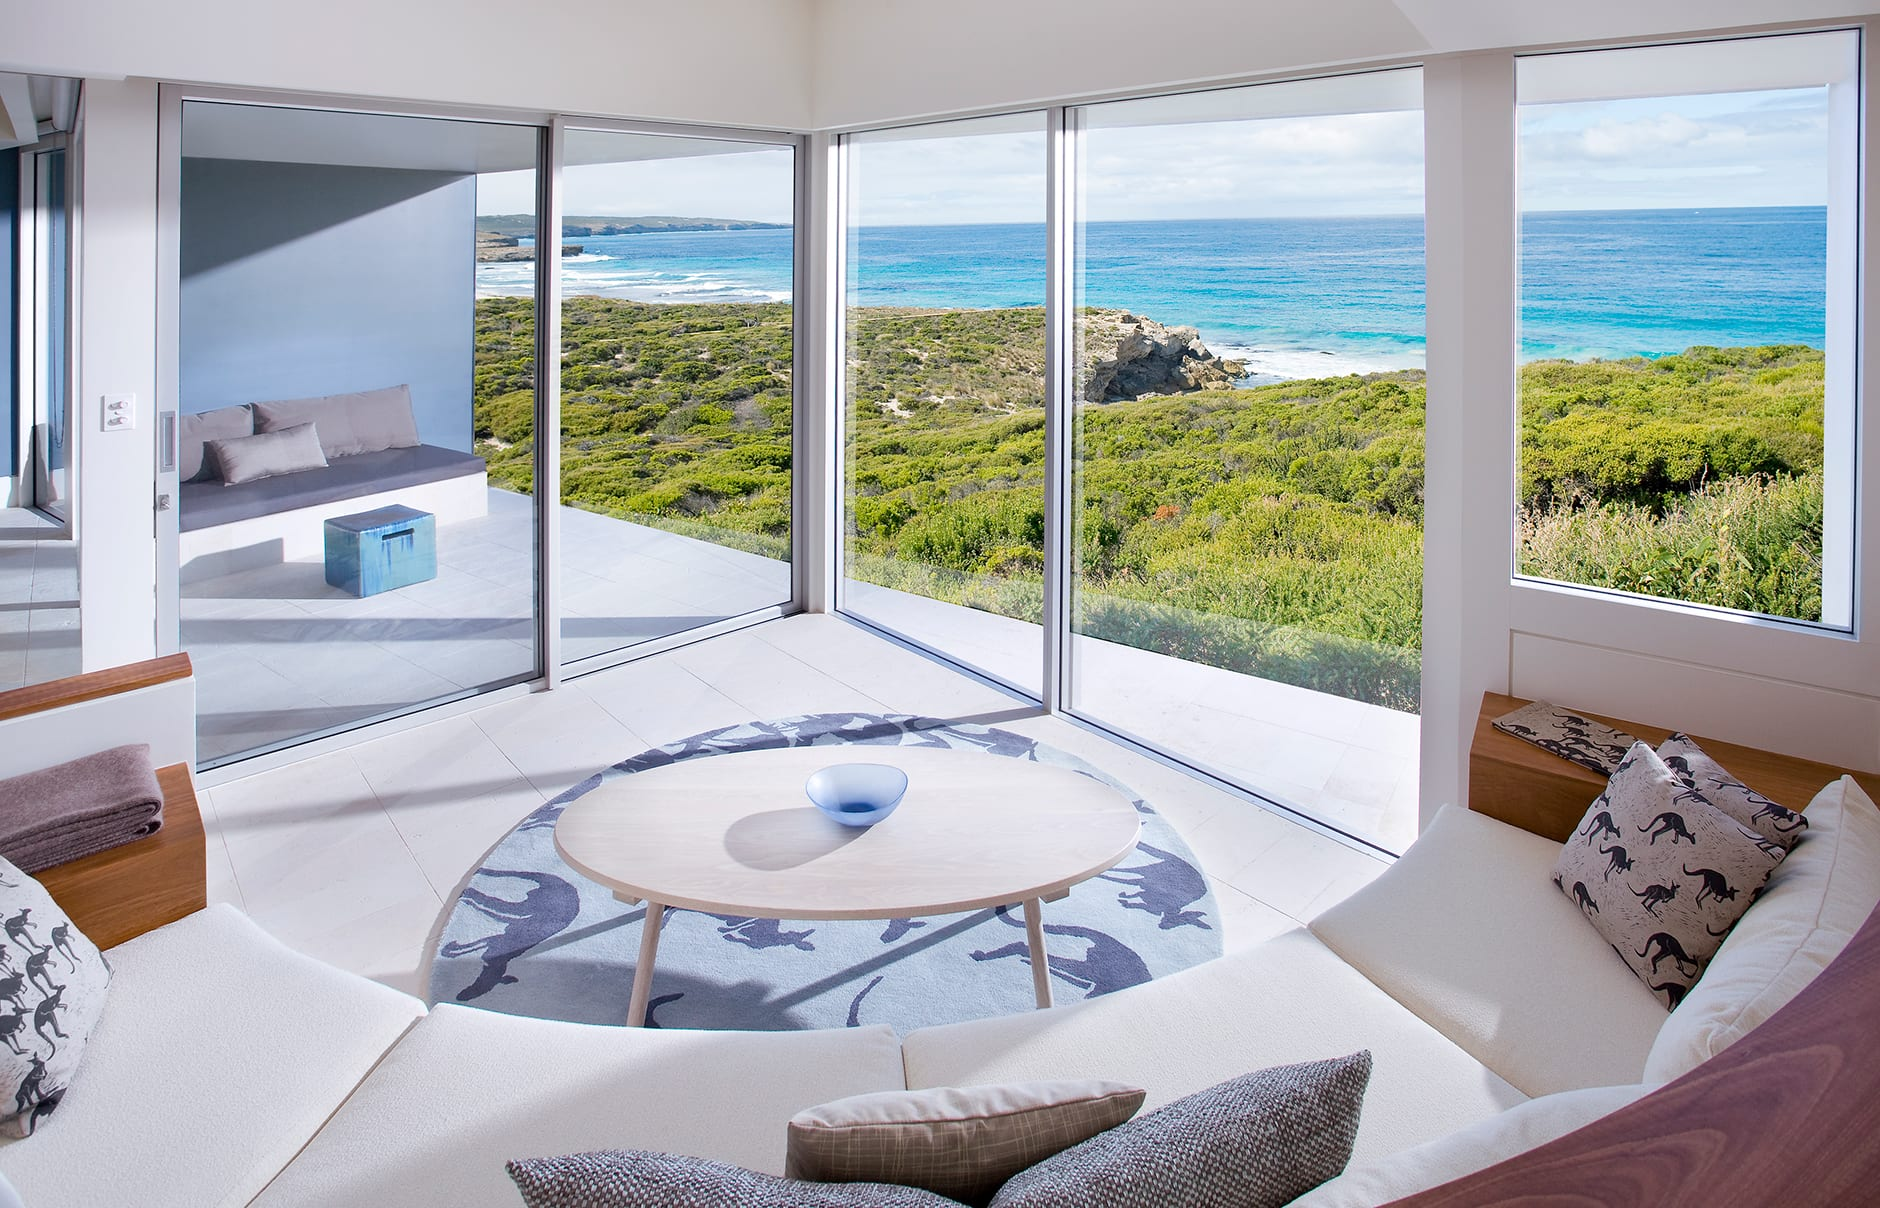 Flinders Suite. Southern Ocean Lodge, Kangaroo Island, Australia. © Luxury Lodges of Australia